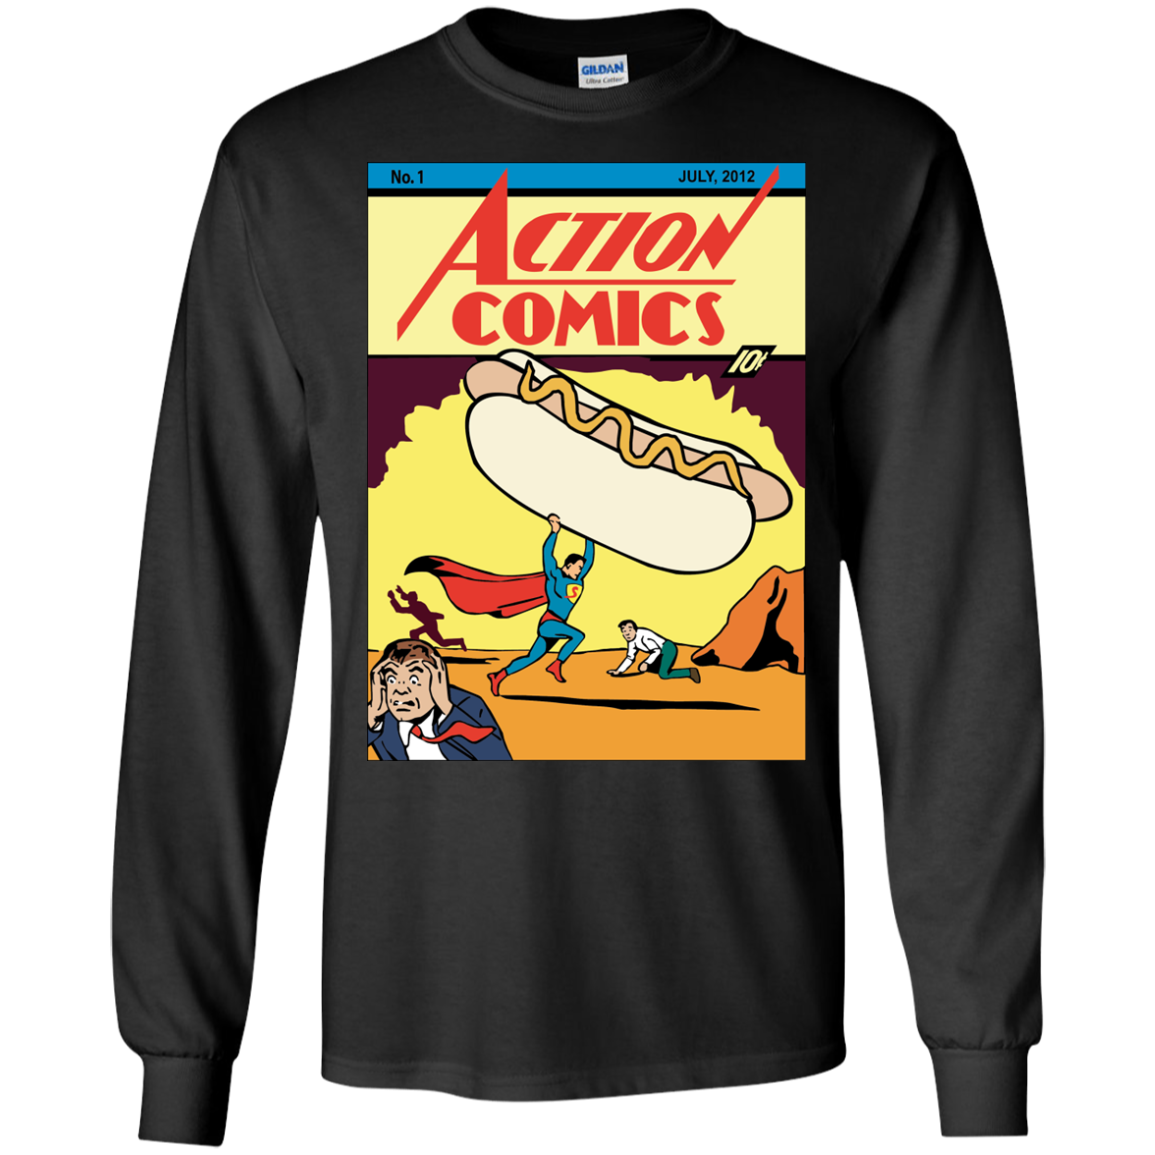 Action comics No. 1 T-Shirt Long Sleeve 240